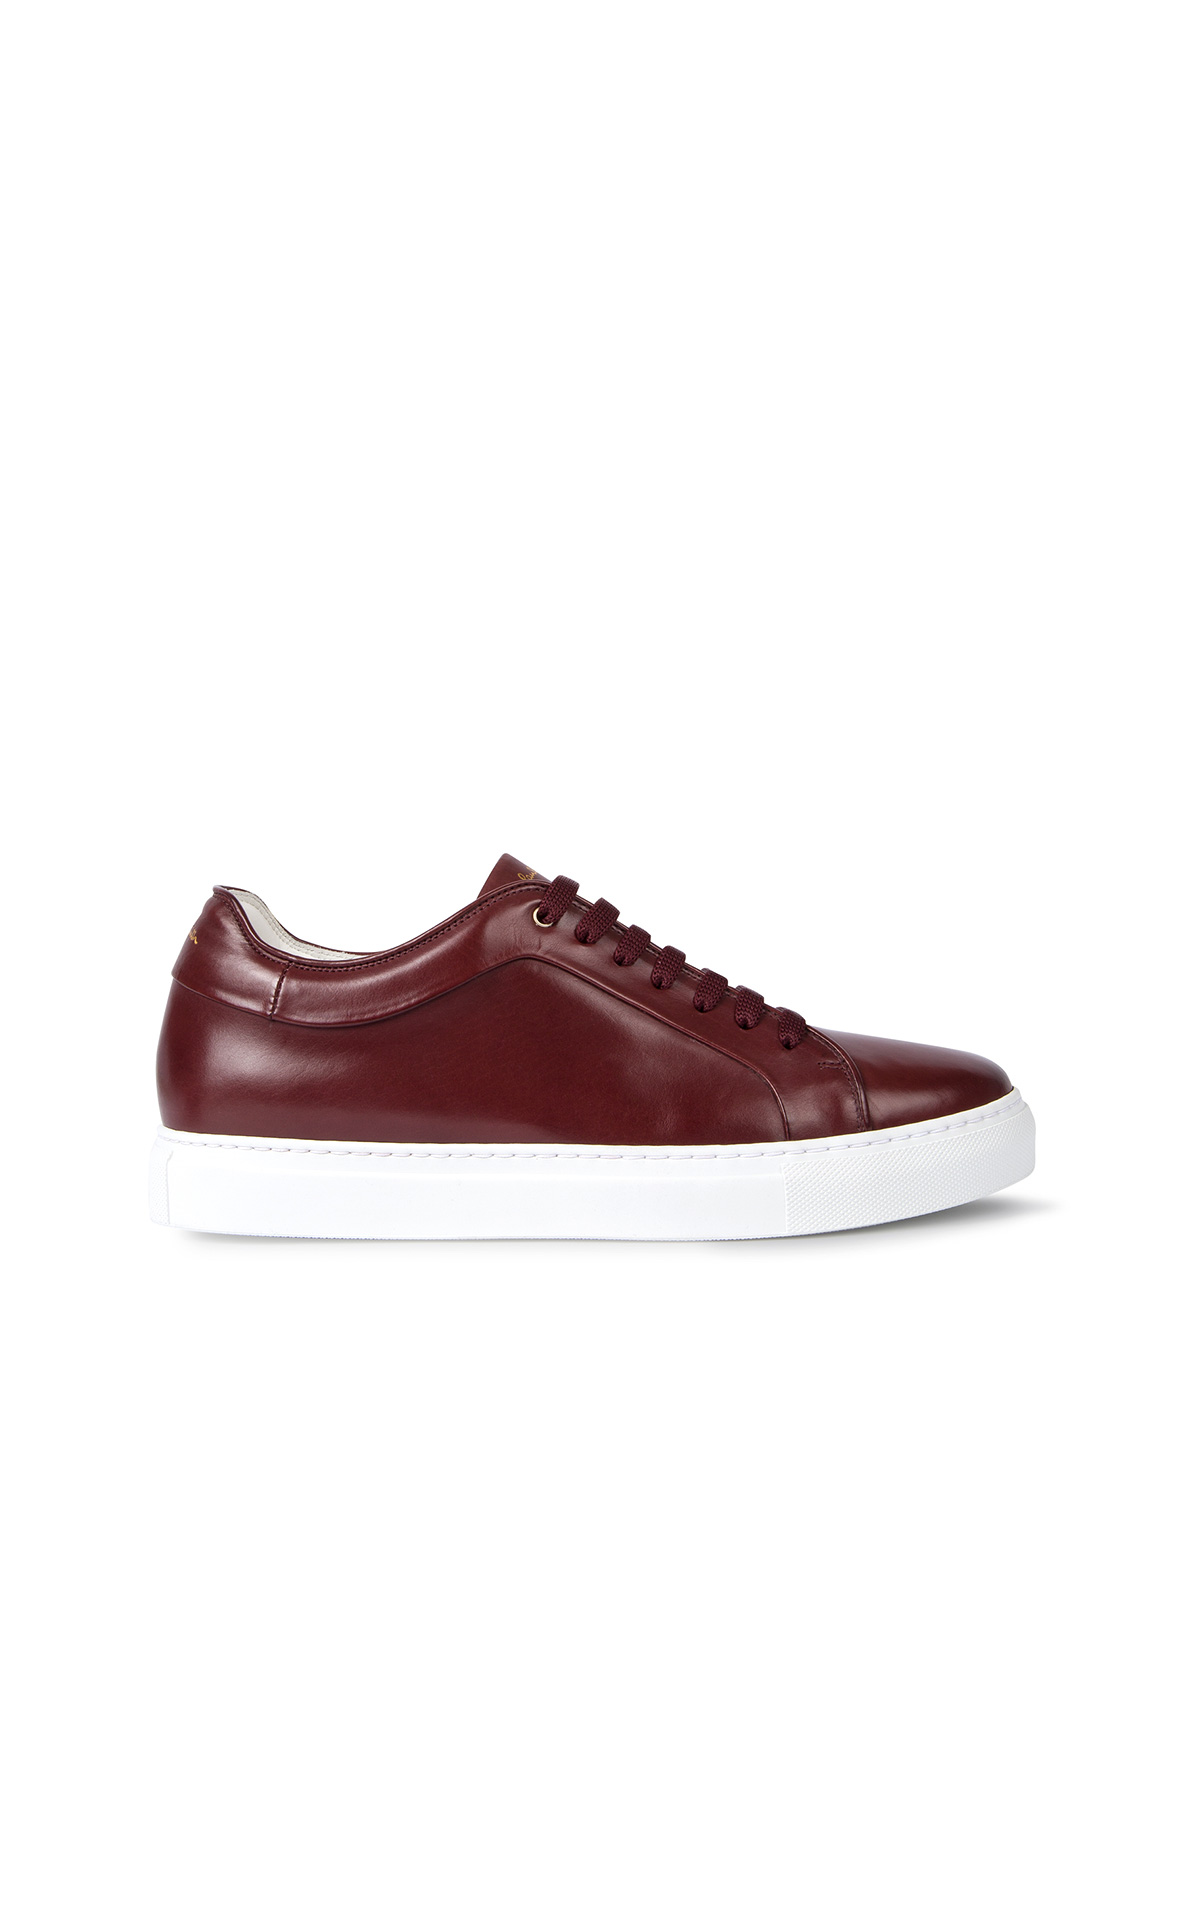 La Vallée Village Paul Smith Basso sneakers